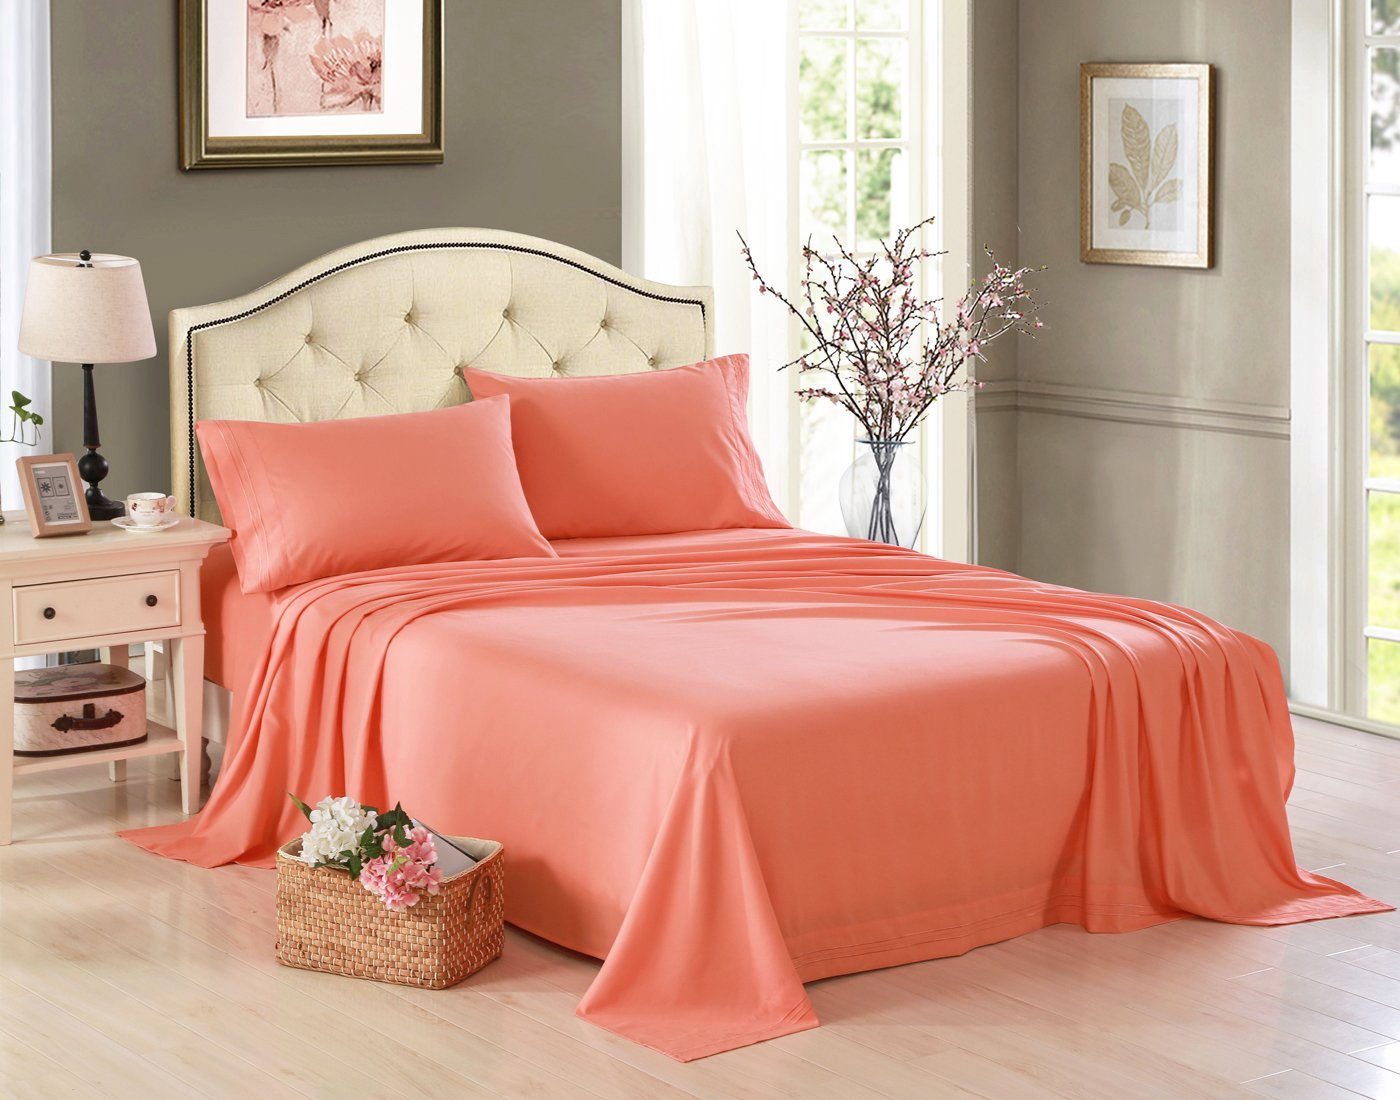 Exceptional Honeymoon 1800 Brushed Microfiber Embroidered Bed Sheet Set, Ultra Soft,  Twin   Gray   Walmart.com